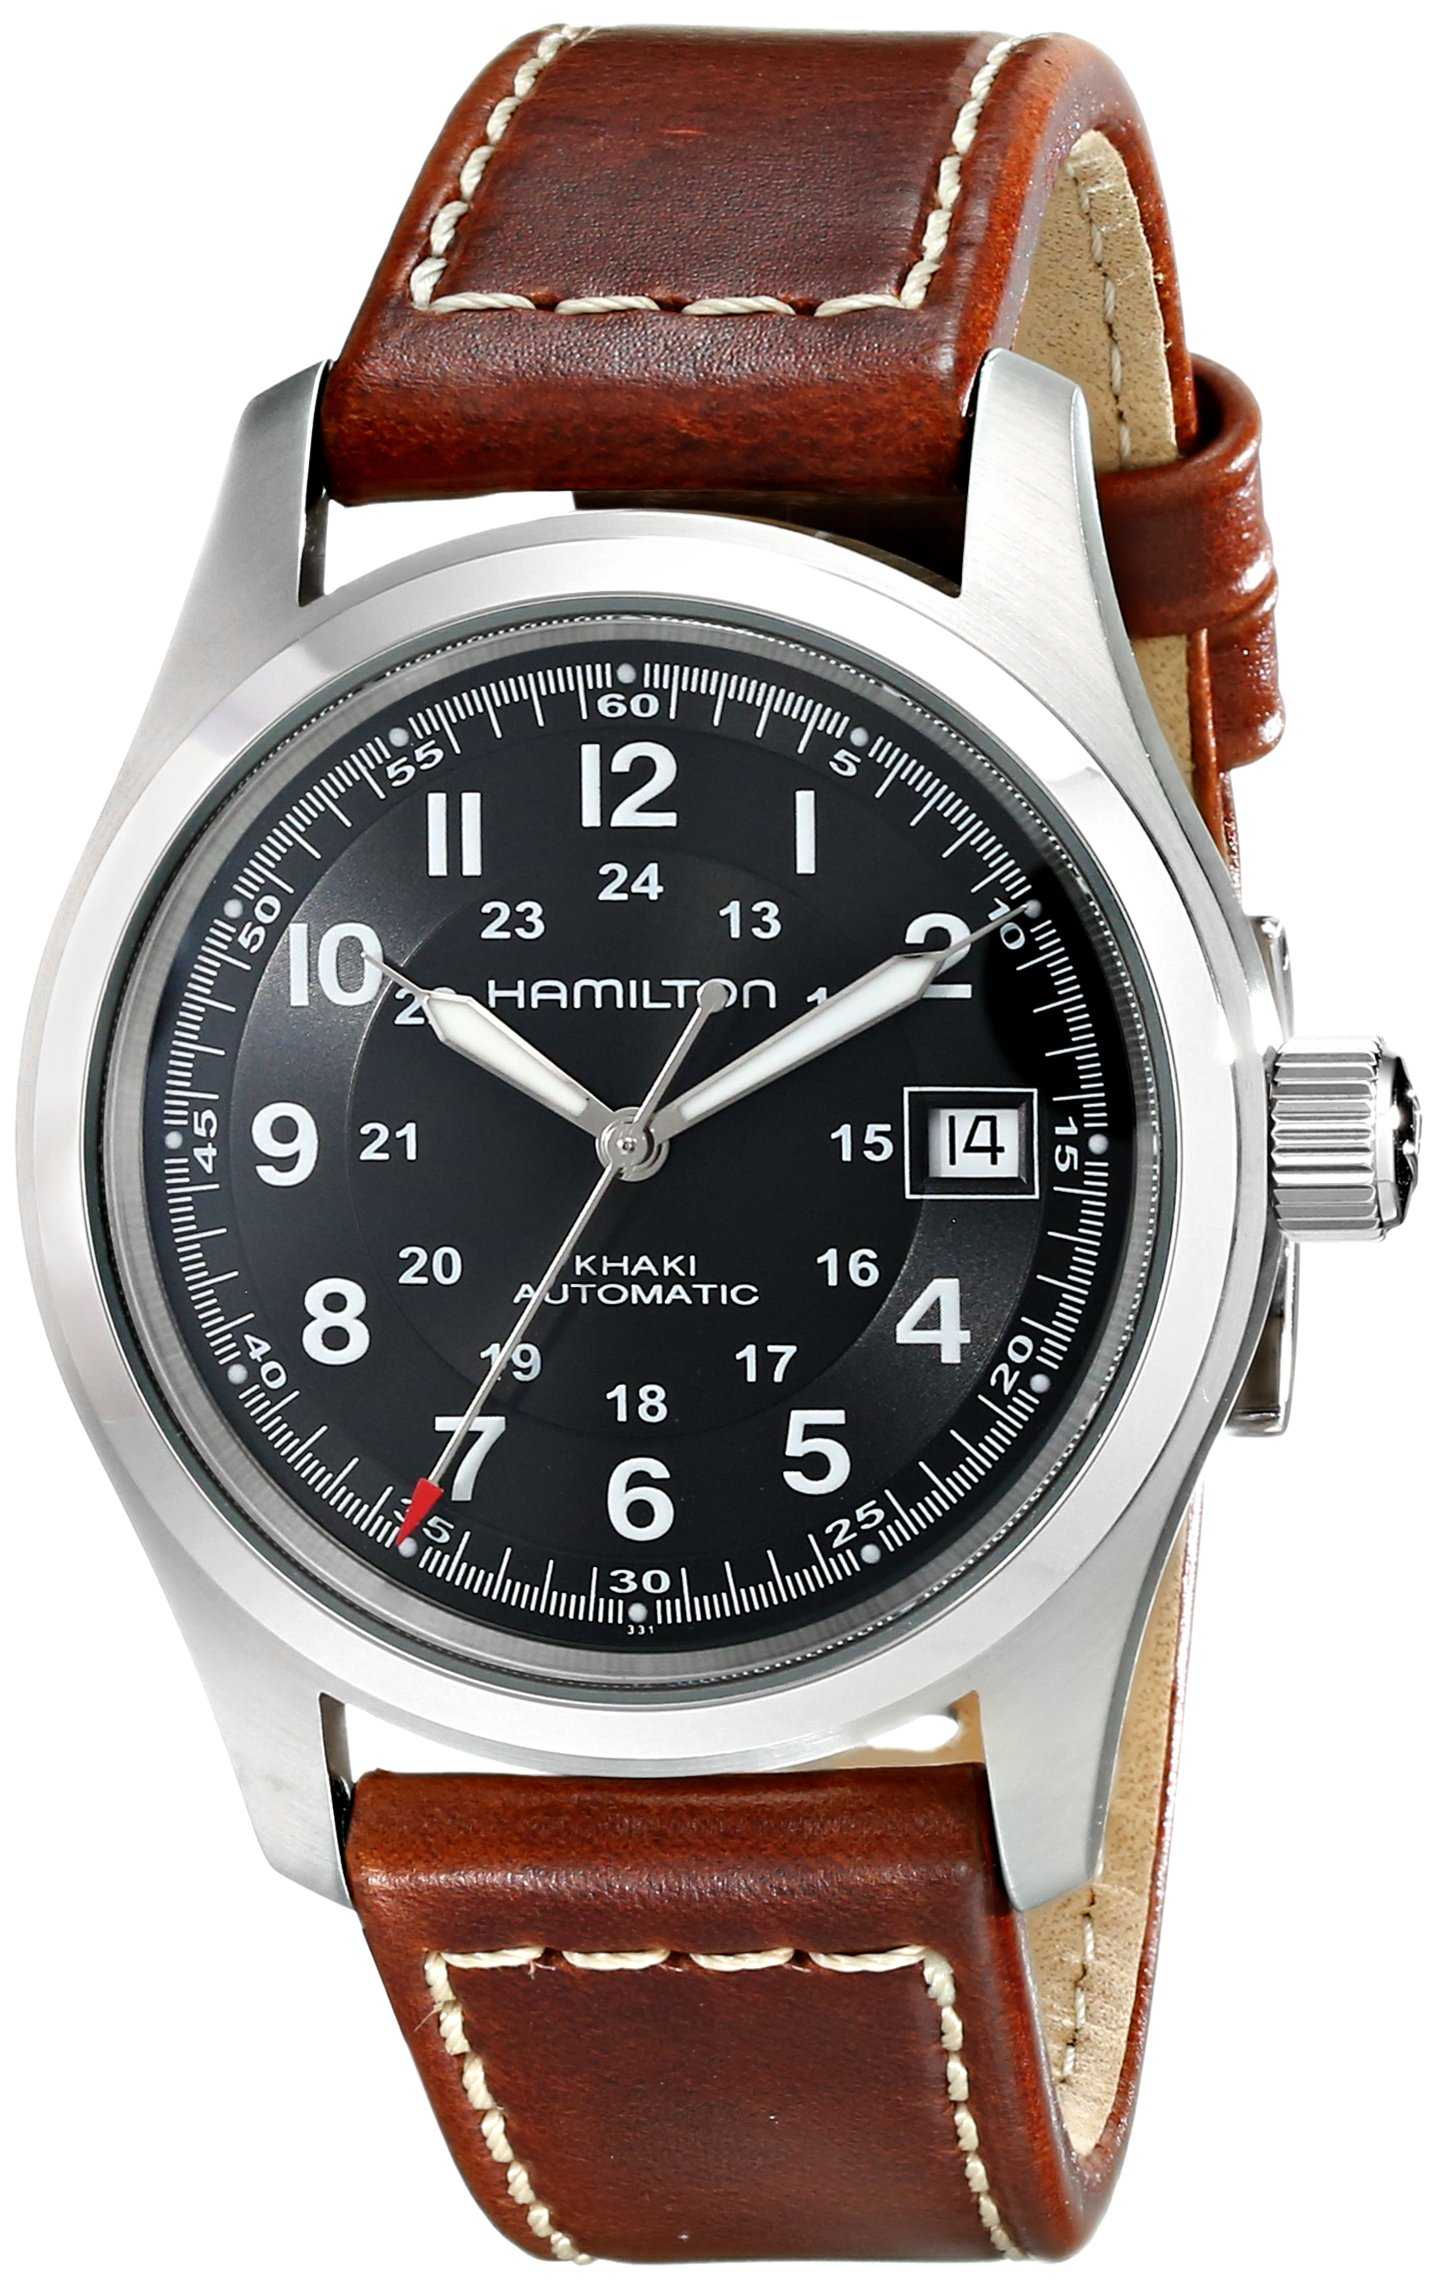 Hamilton Men's Analogue Automatic Watch with Leather Strap H70455533